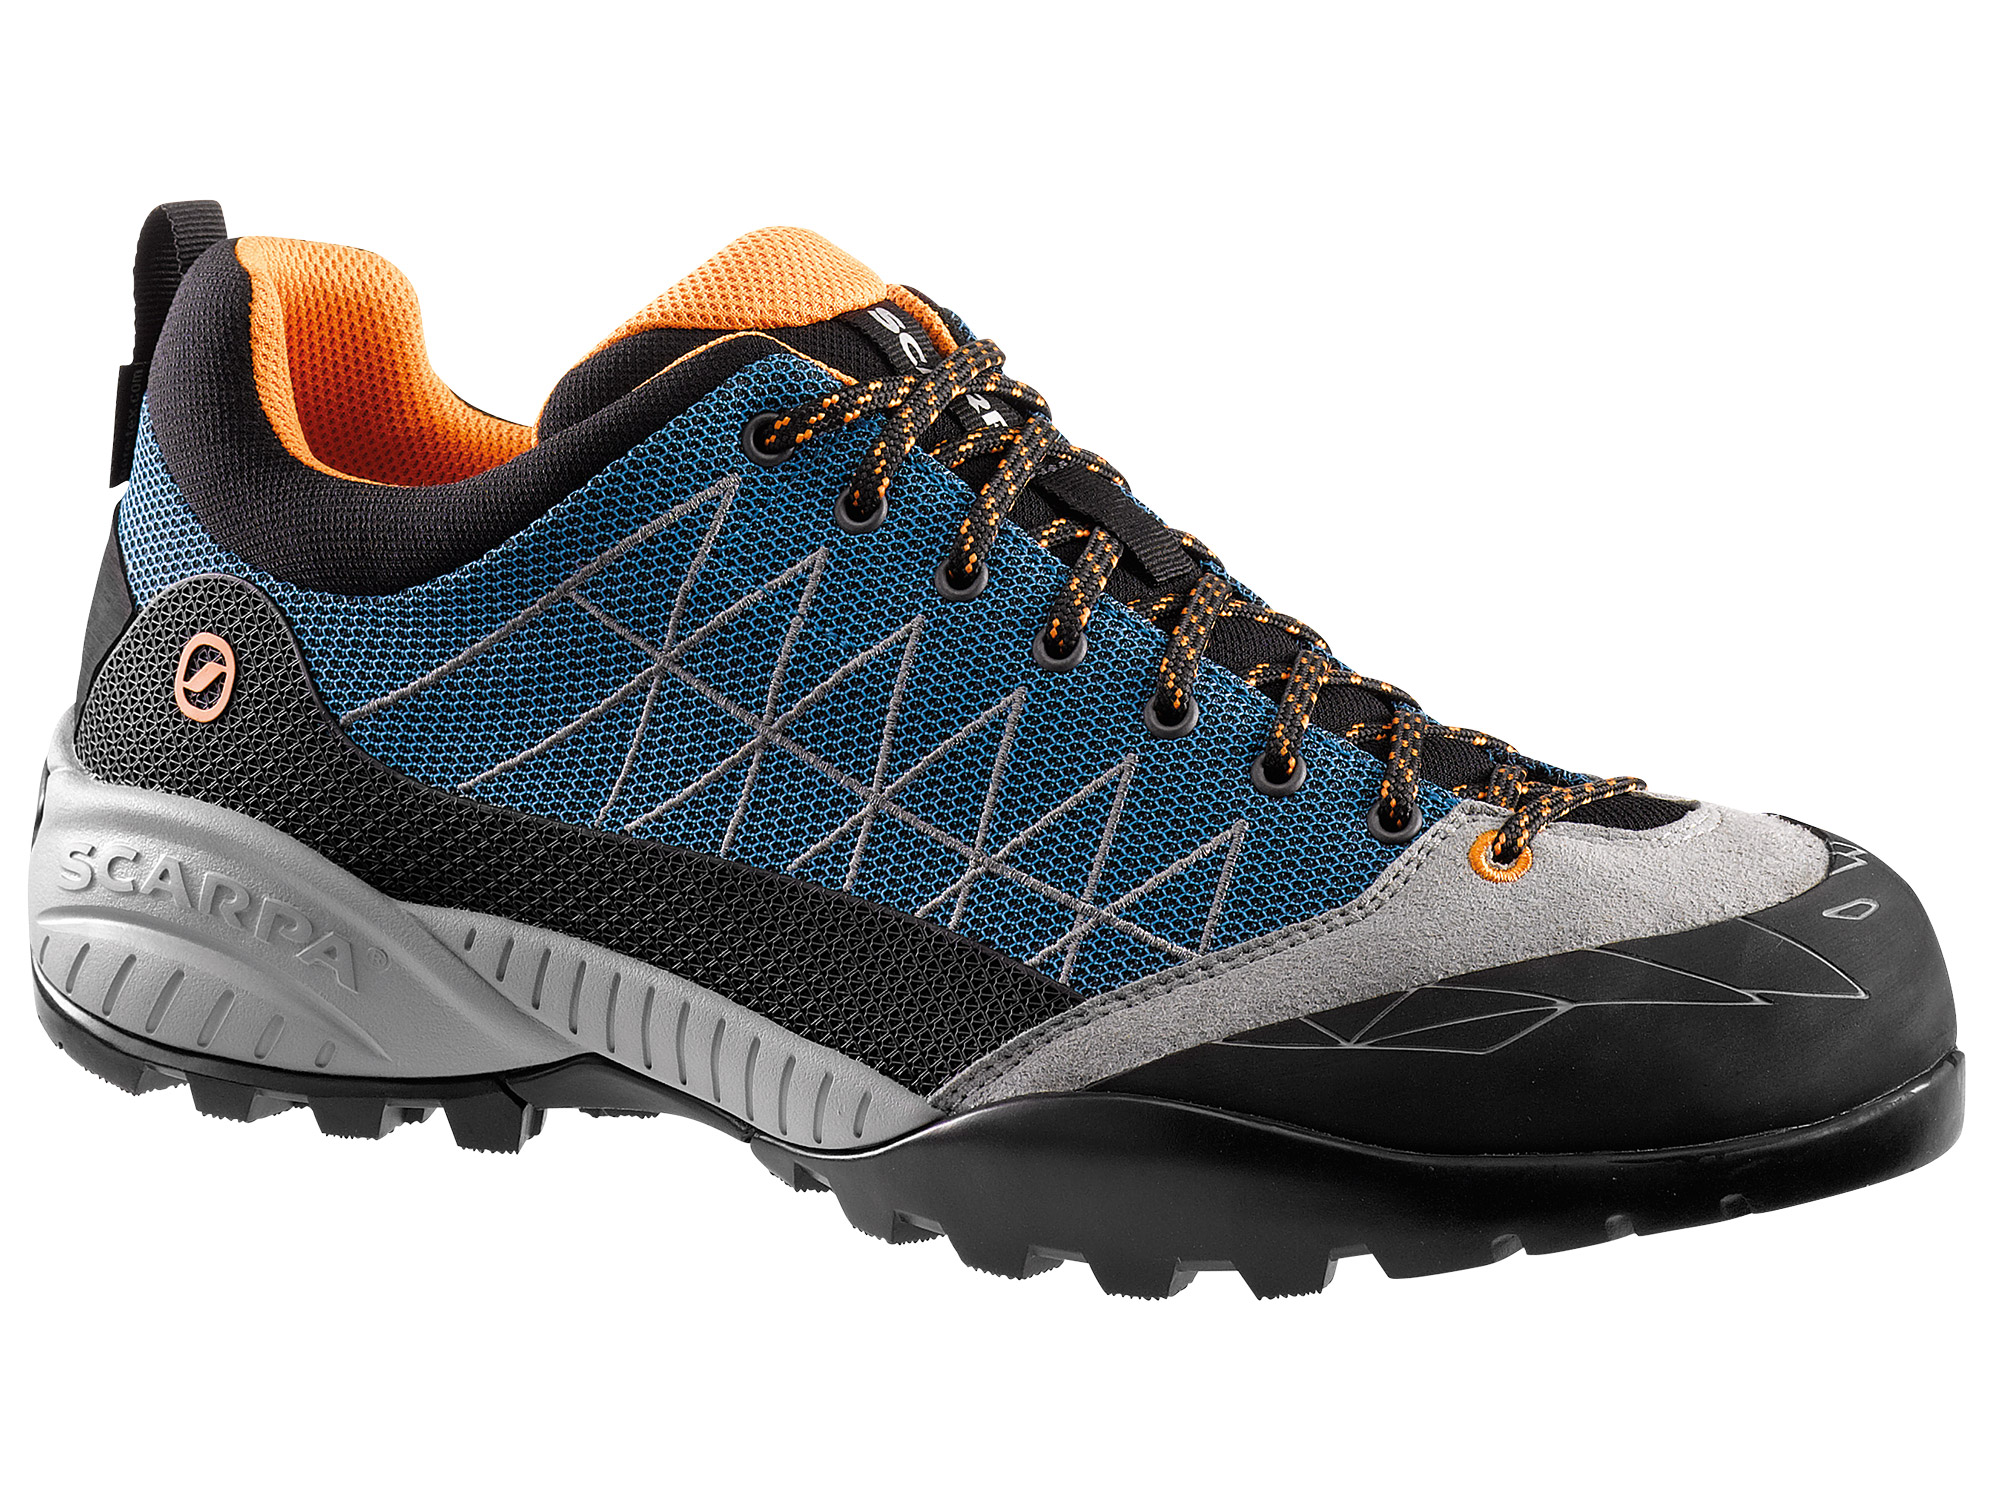 Scarpa - Zen Lite GTX Azure-Orange - Approach Shoes - 47